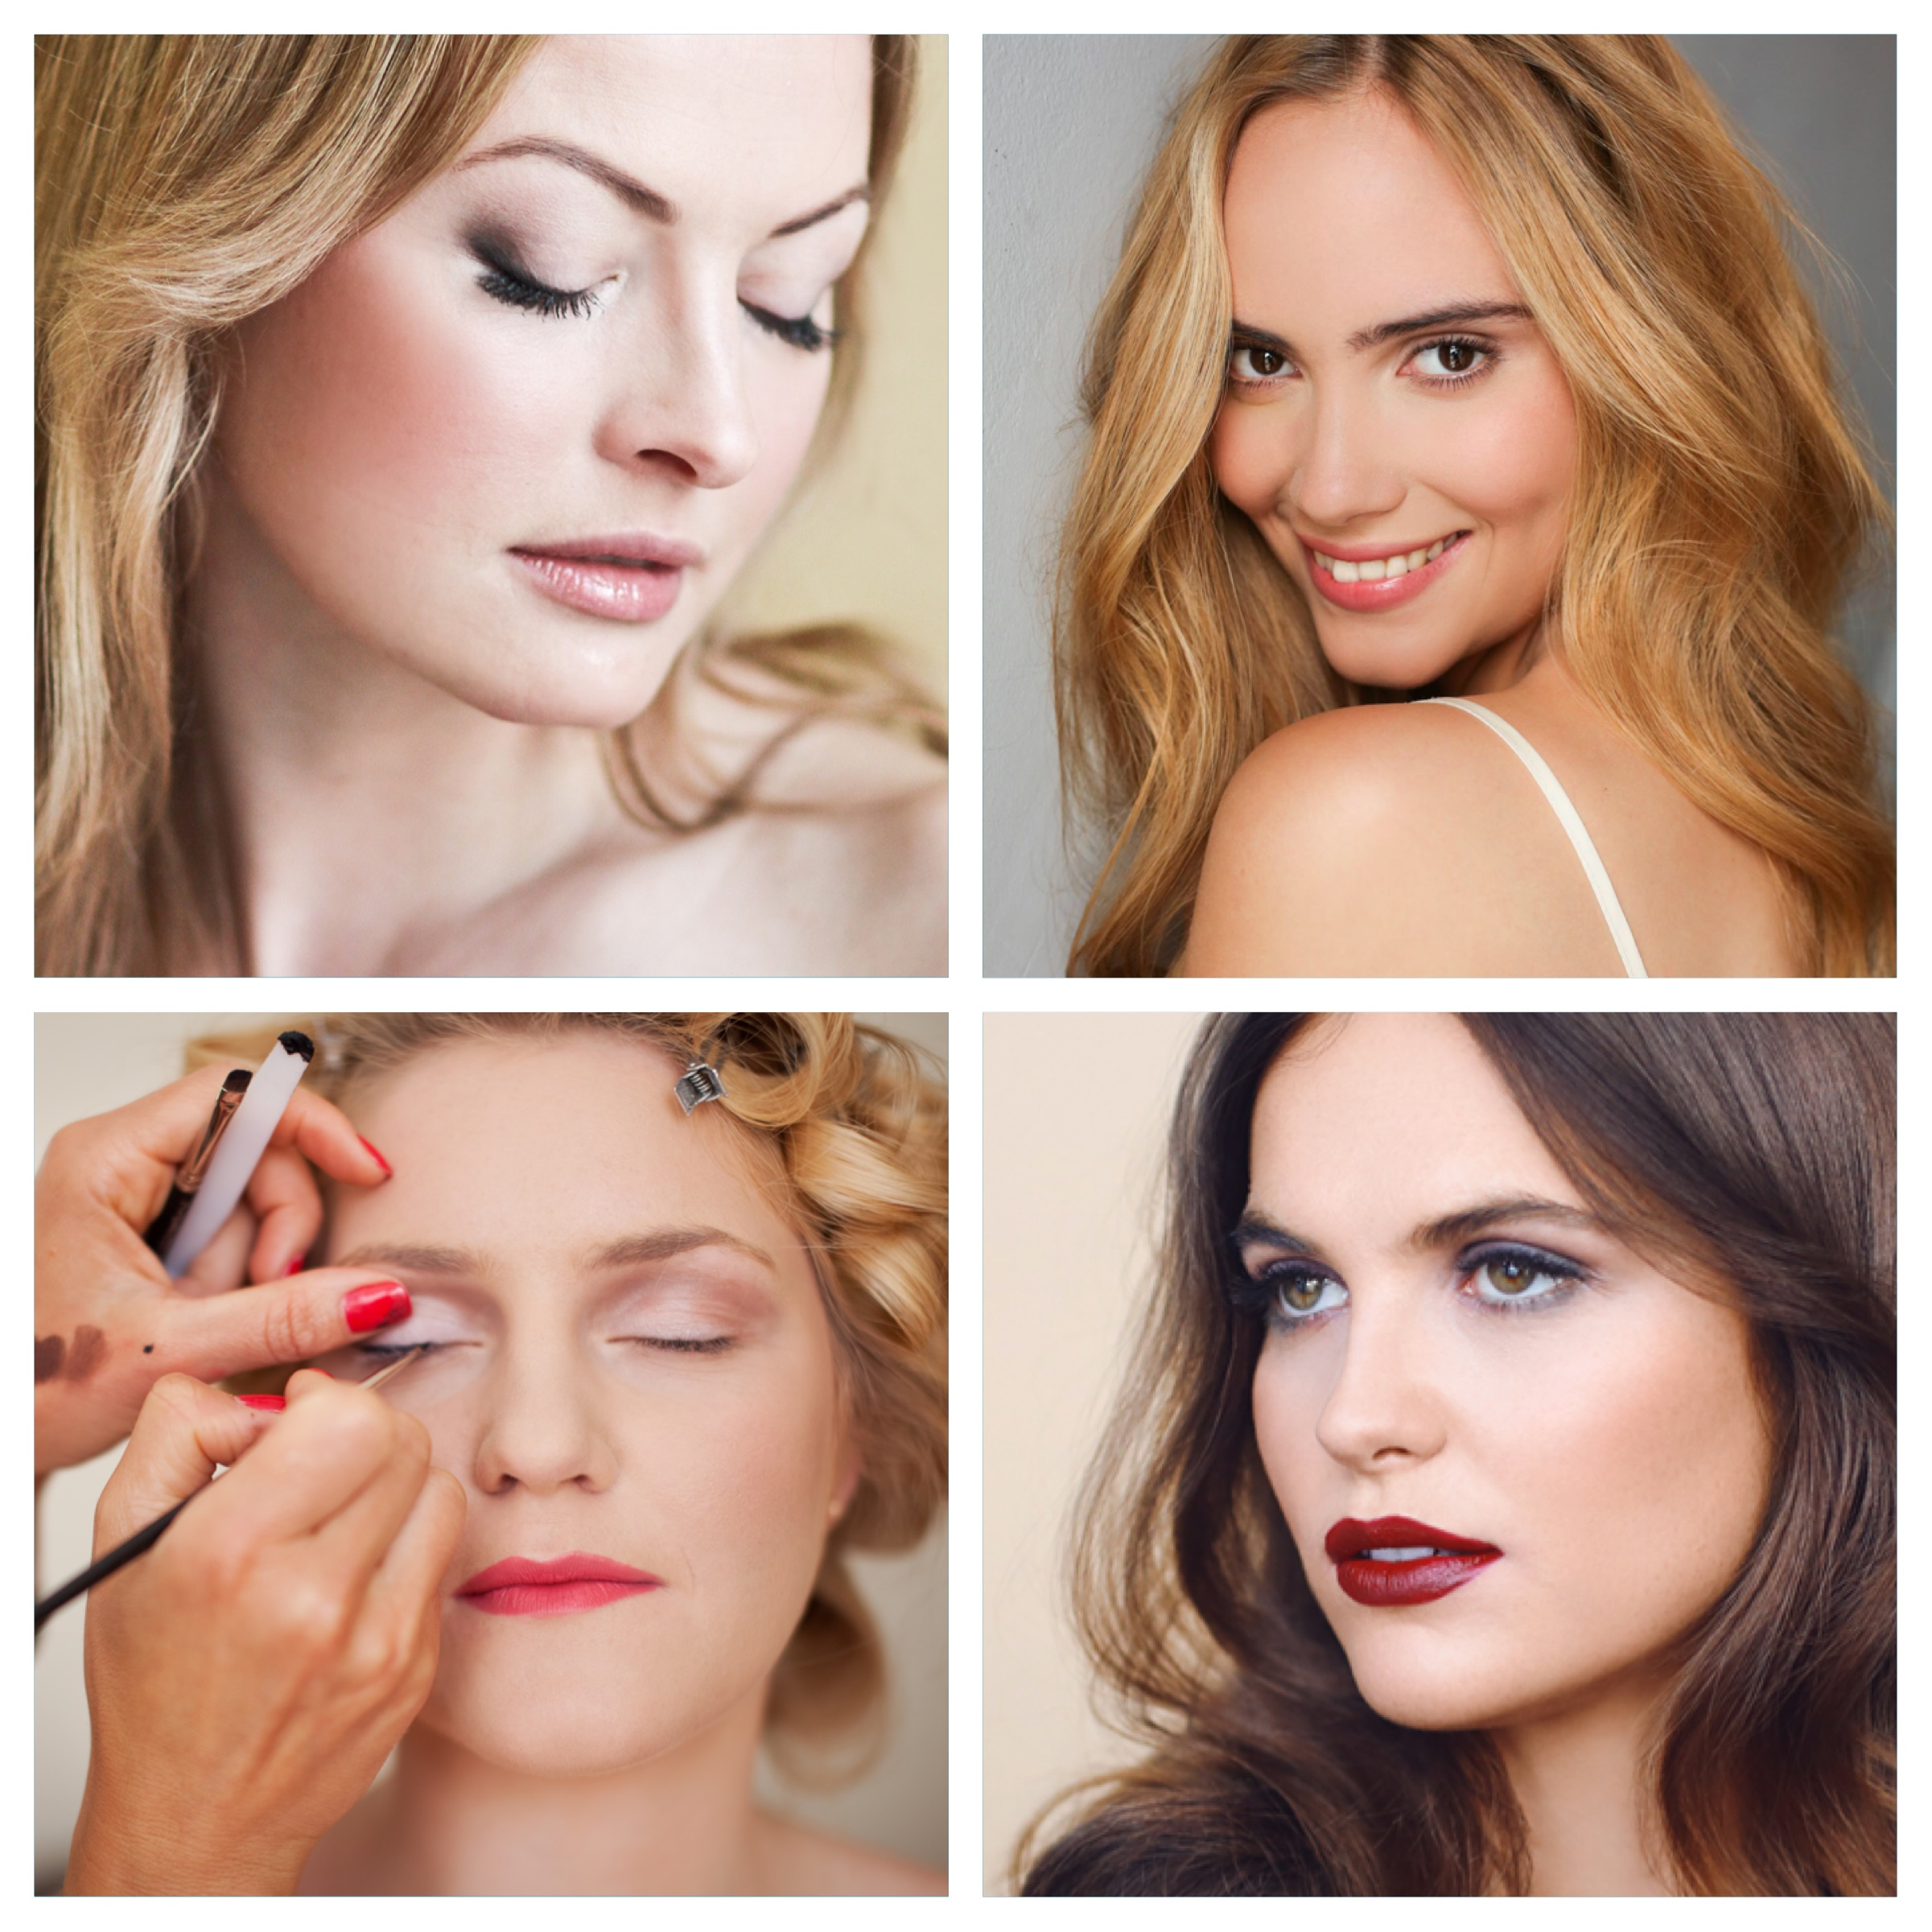 Discussion on this topic: Top 10 Bridal Makeup Artists In Chennai, top-10-bridal-makeup-artists-in-chennai/